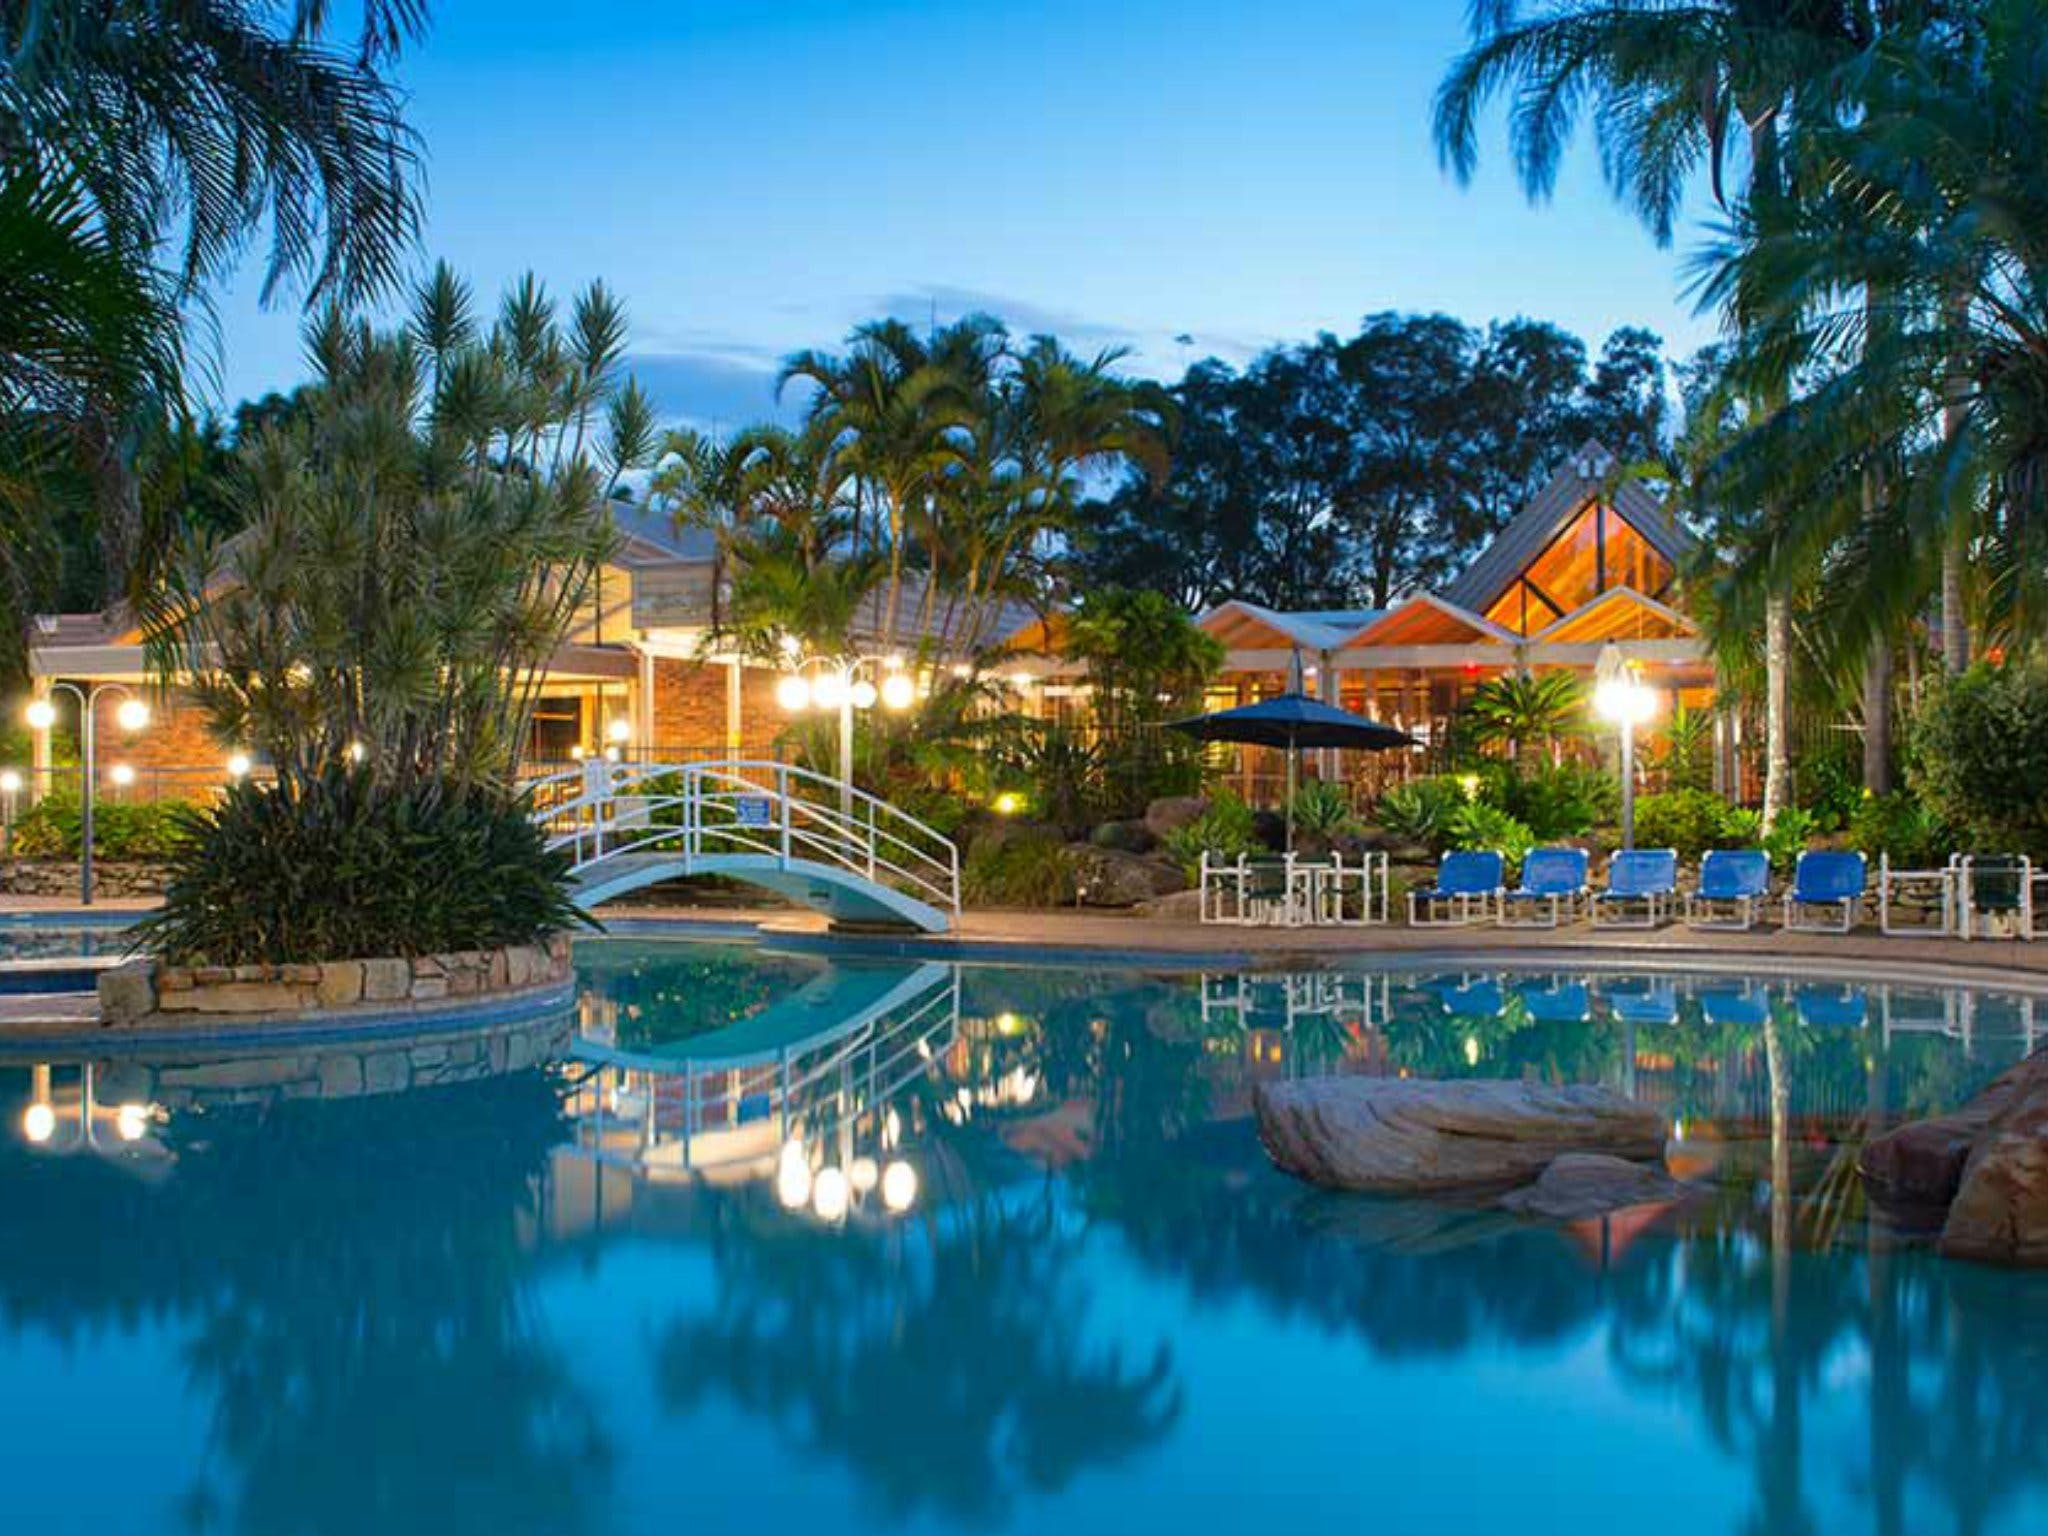 Boambee Bay Resort - Whitsundays Accommodation